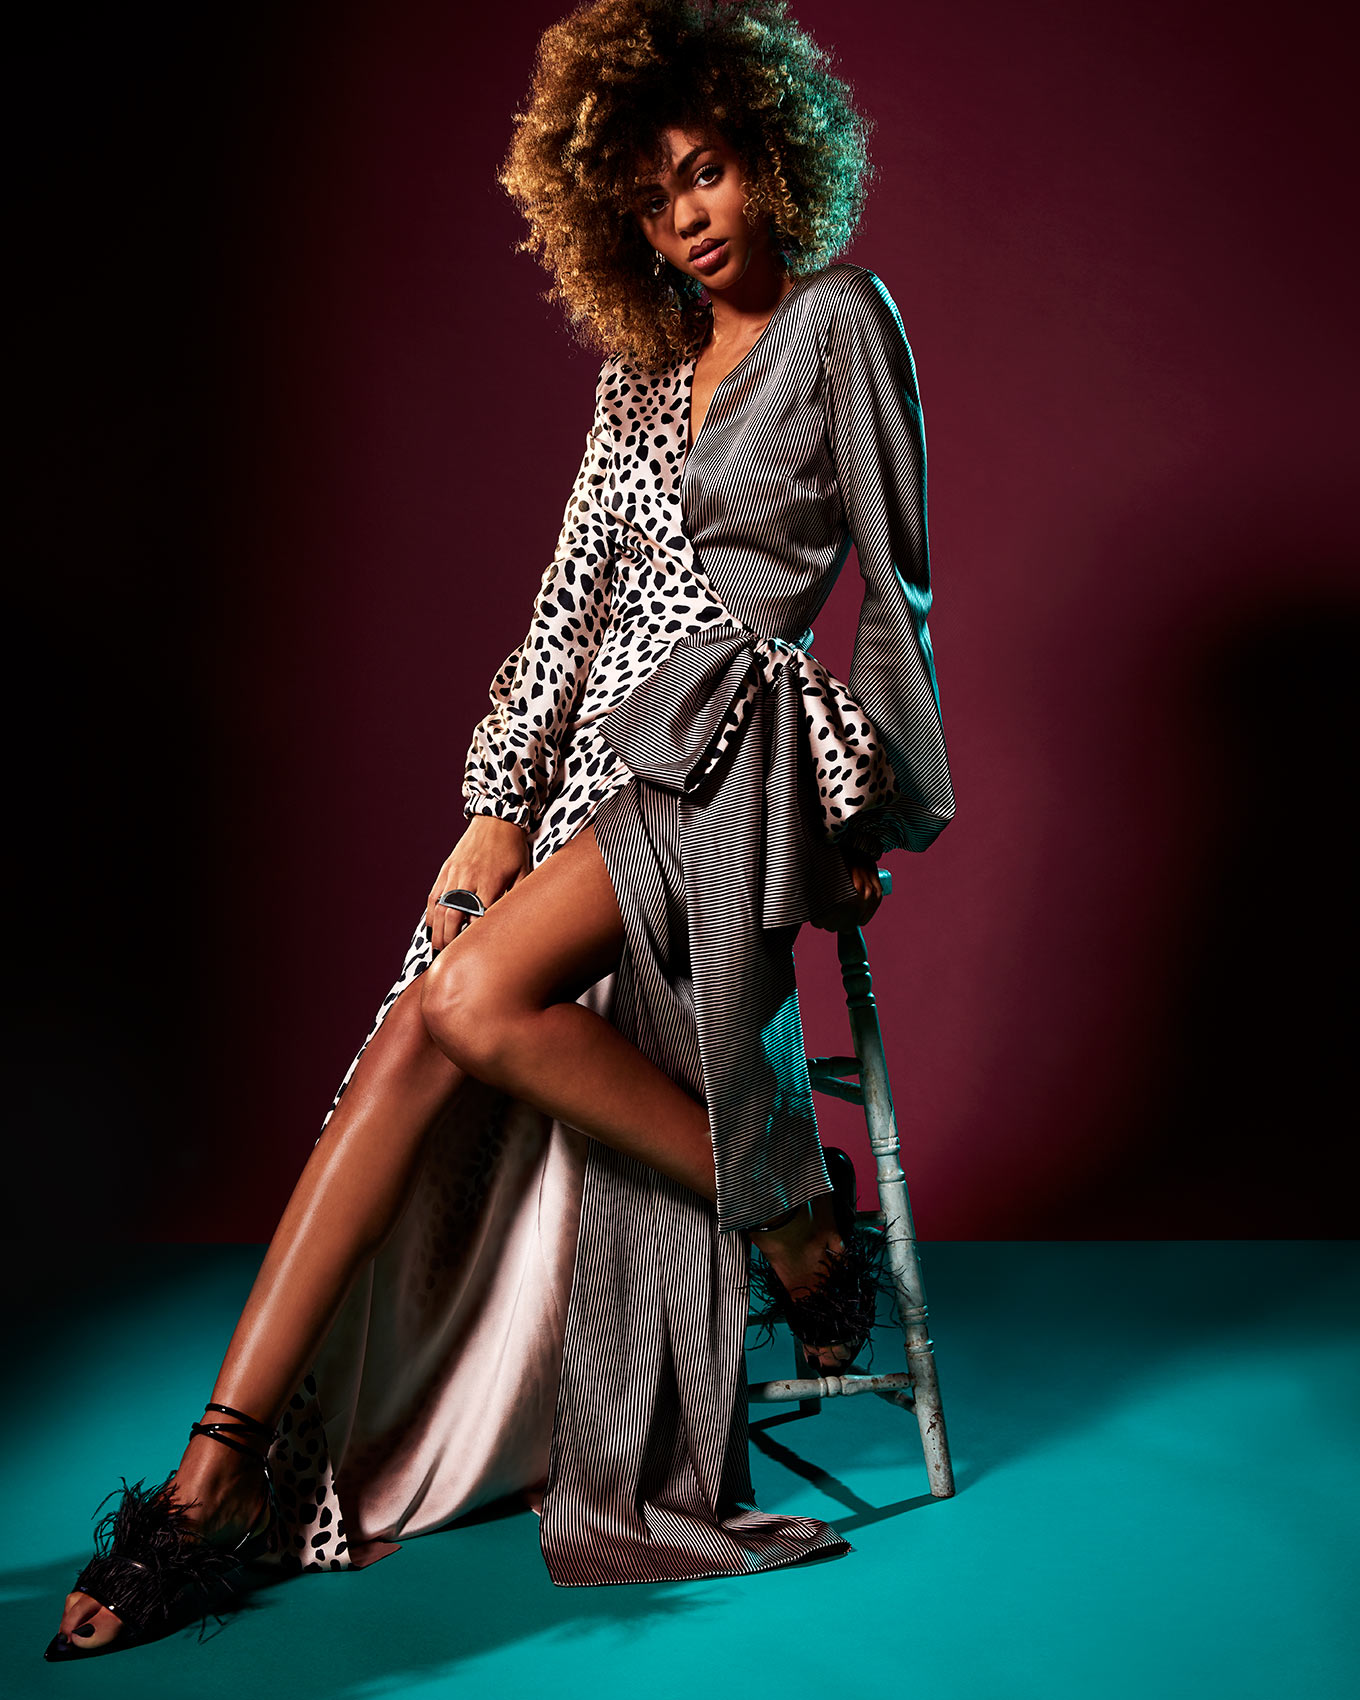 Fashion photography featuring a model using studio lighting and gels.